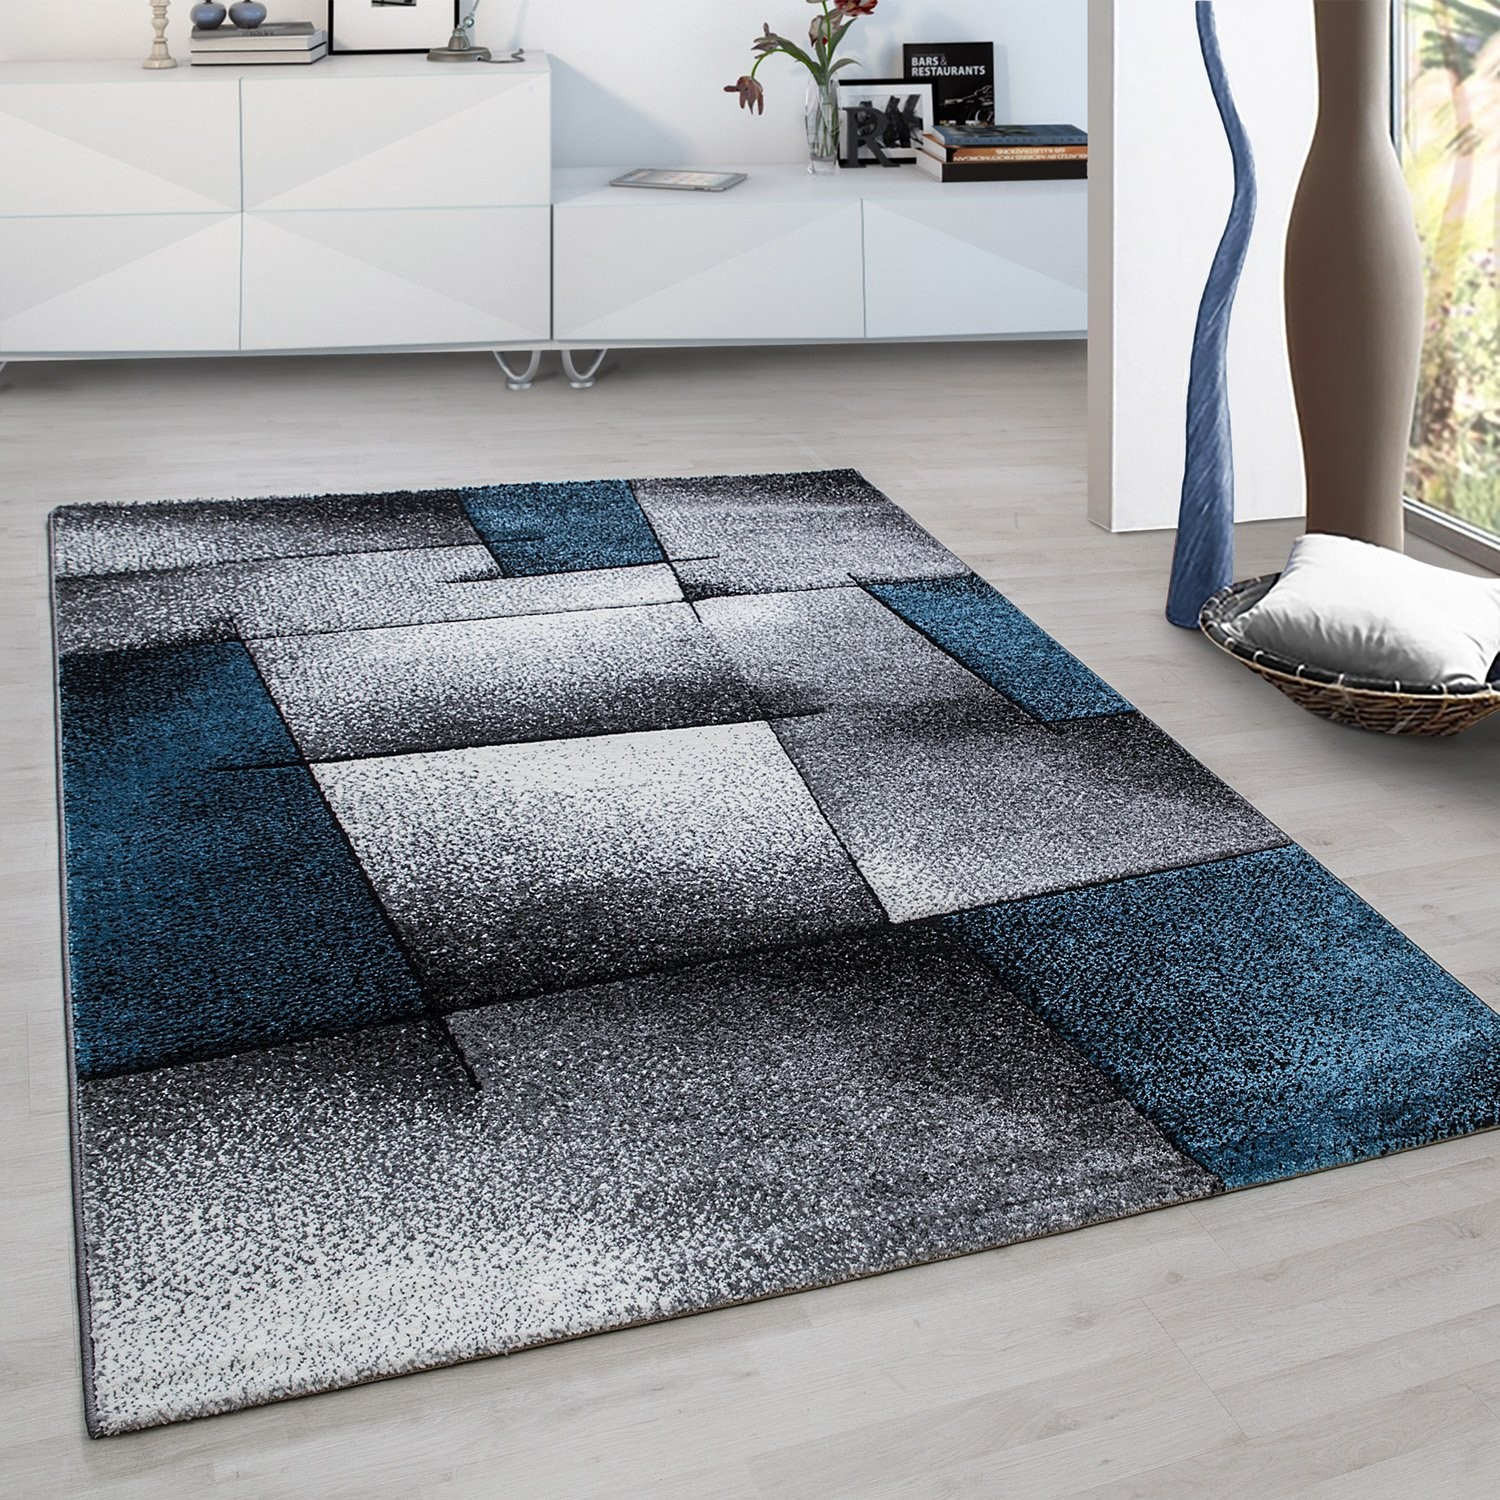 tapis fris e effet 3d design moderne blue turquoise gris noir harlequin. Black Bedroom Furniture Sets. Home Design Ideas